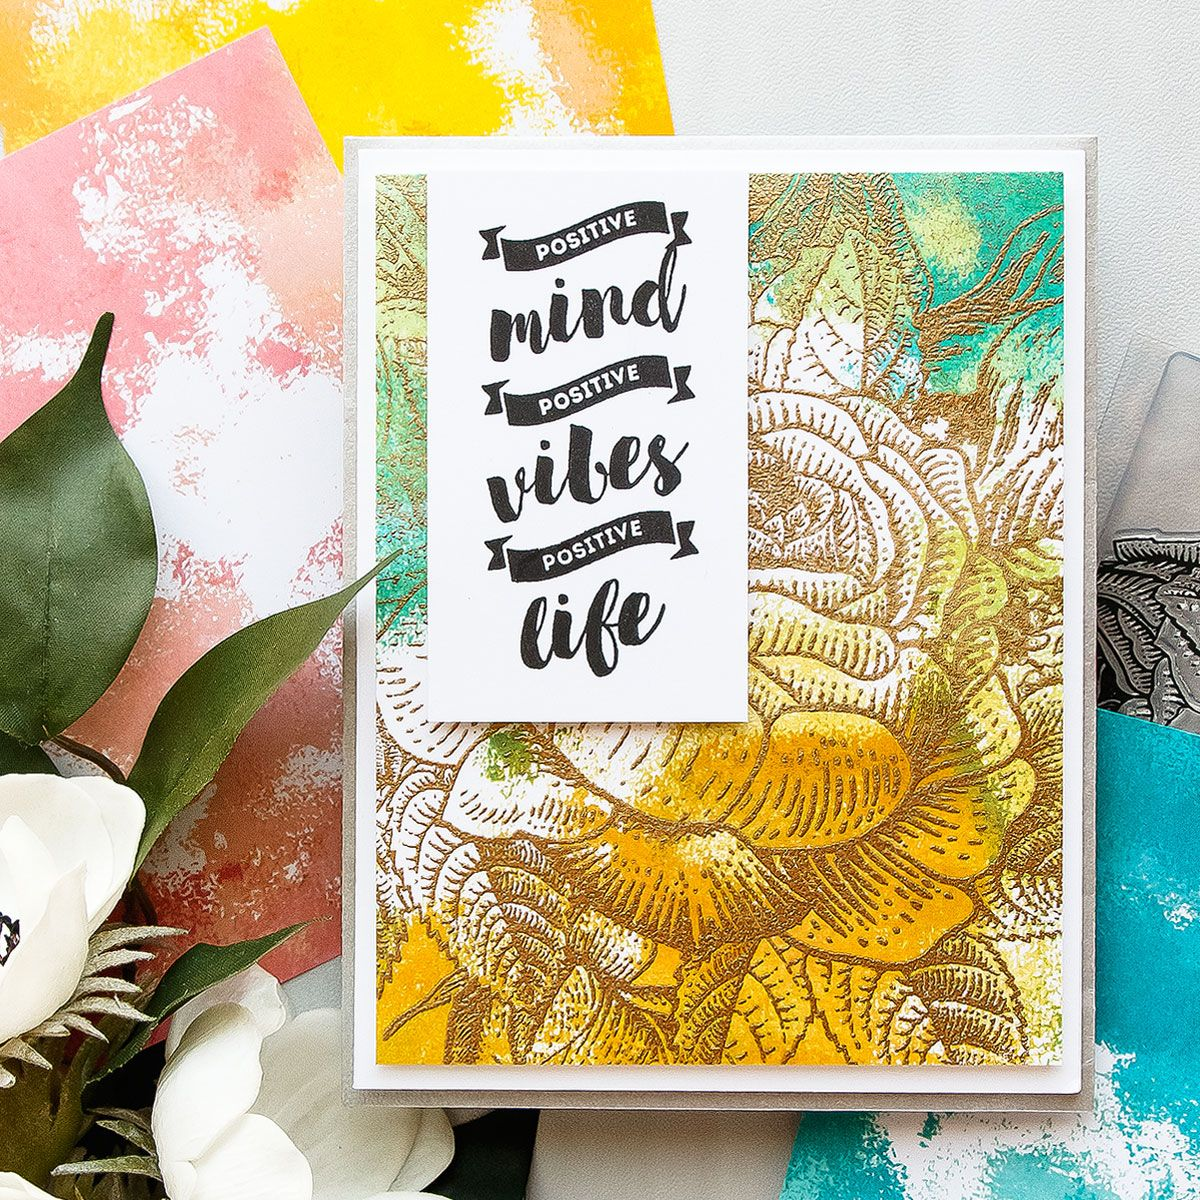 Brutus monroe stamped faux watercolor backgrounds